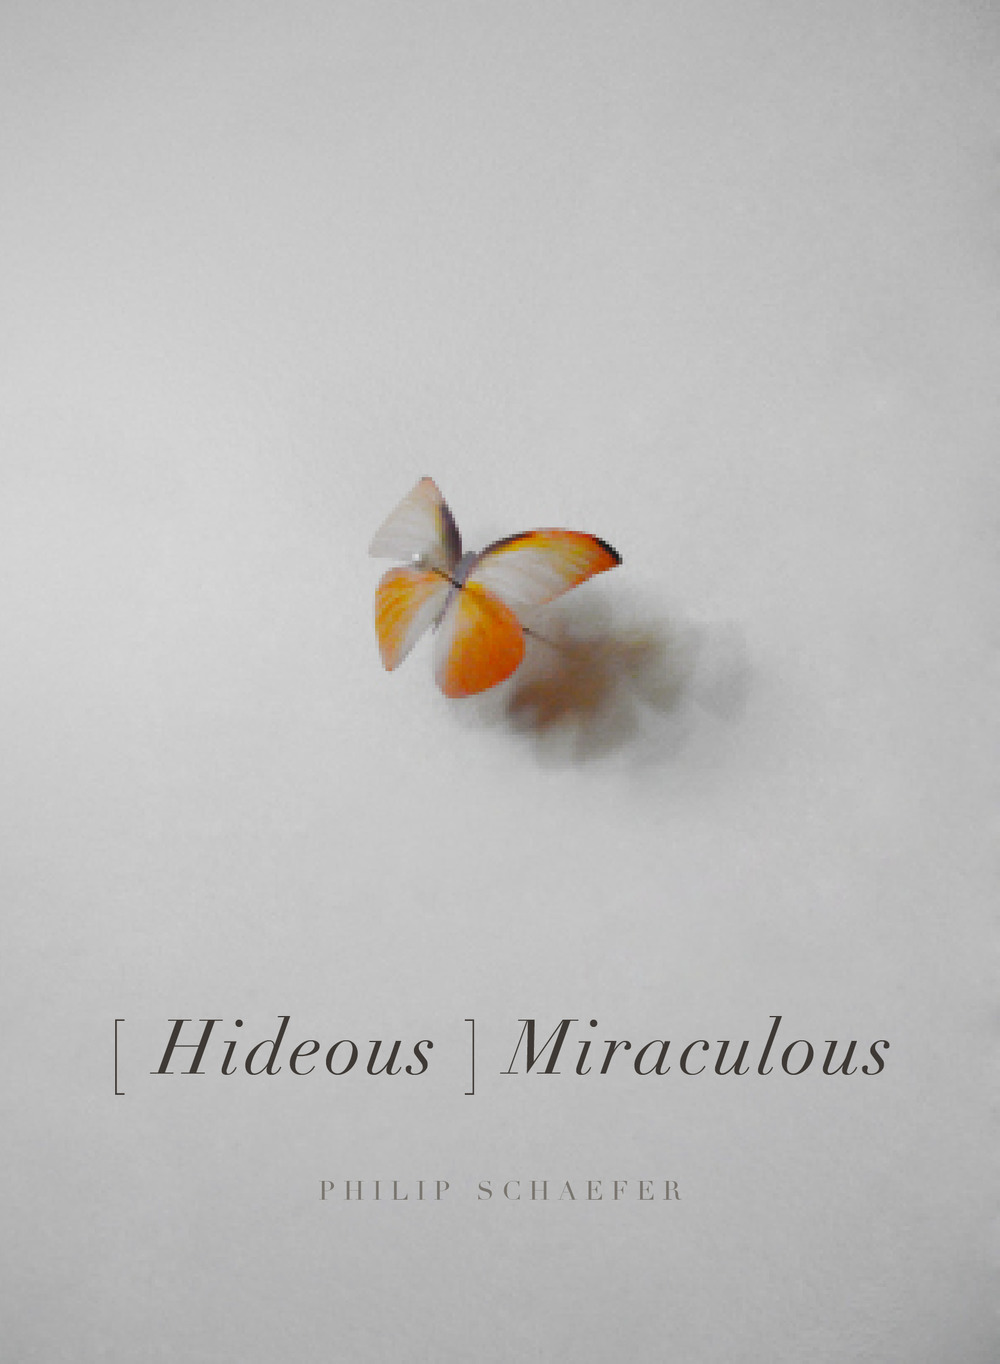 [Hideous] Miraculous  by Philip Schaefer (BOAAT Press, 2015) |  Full PDF